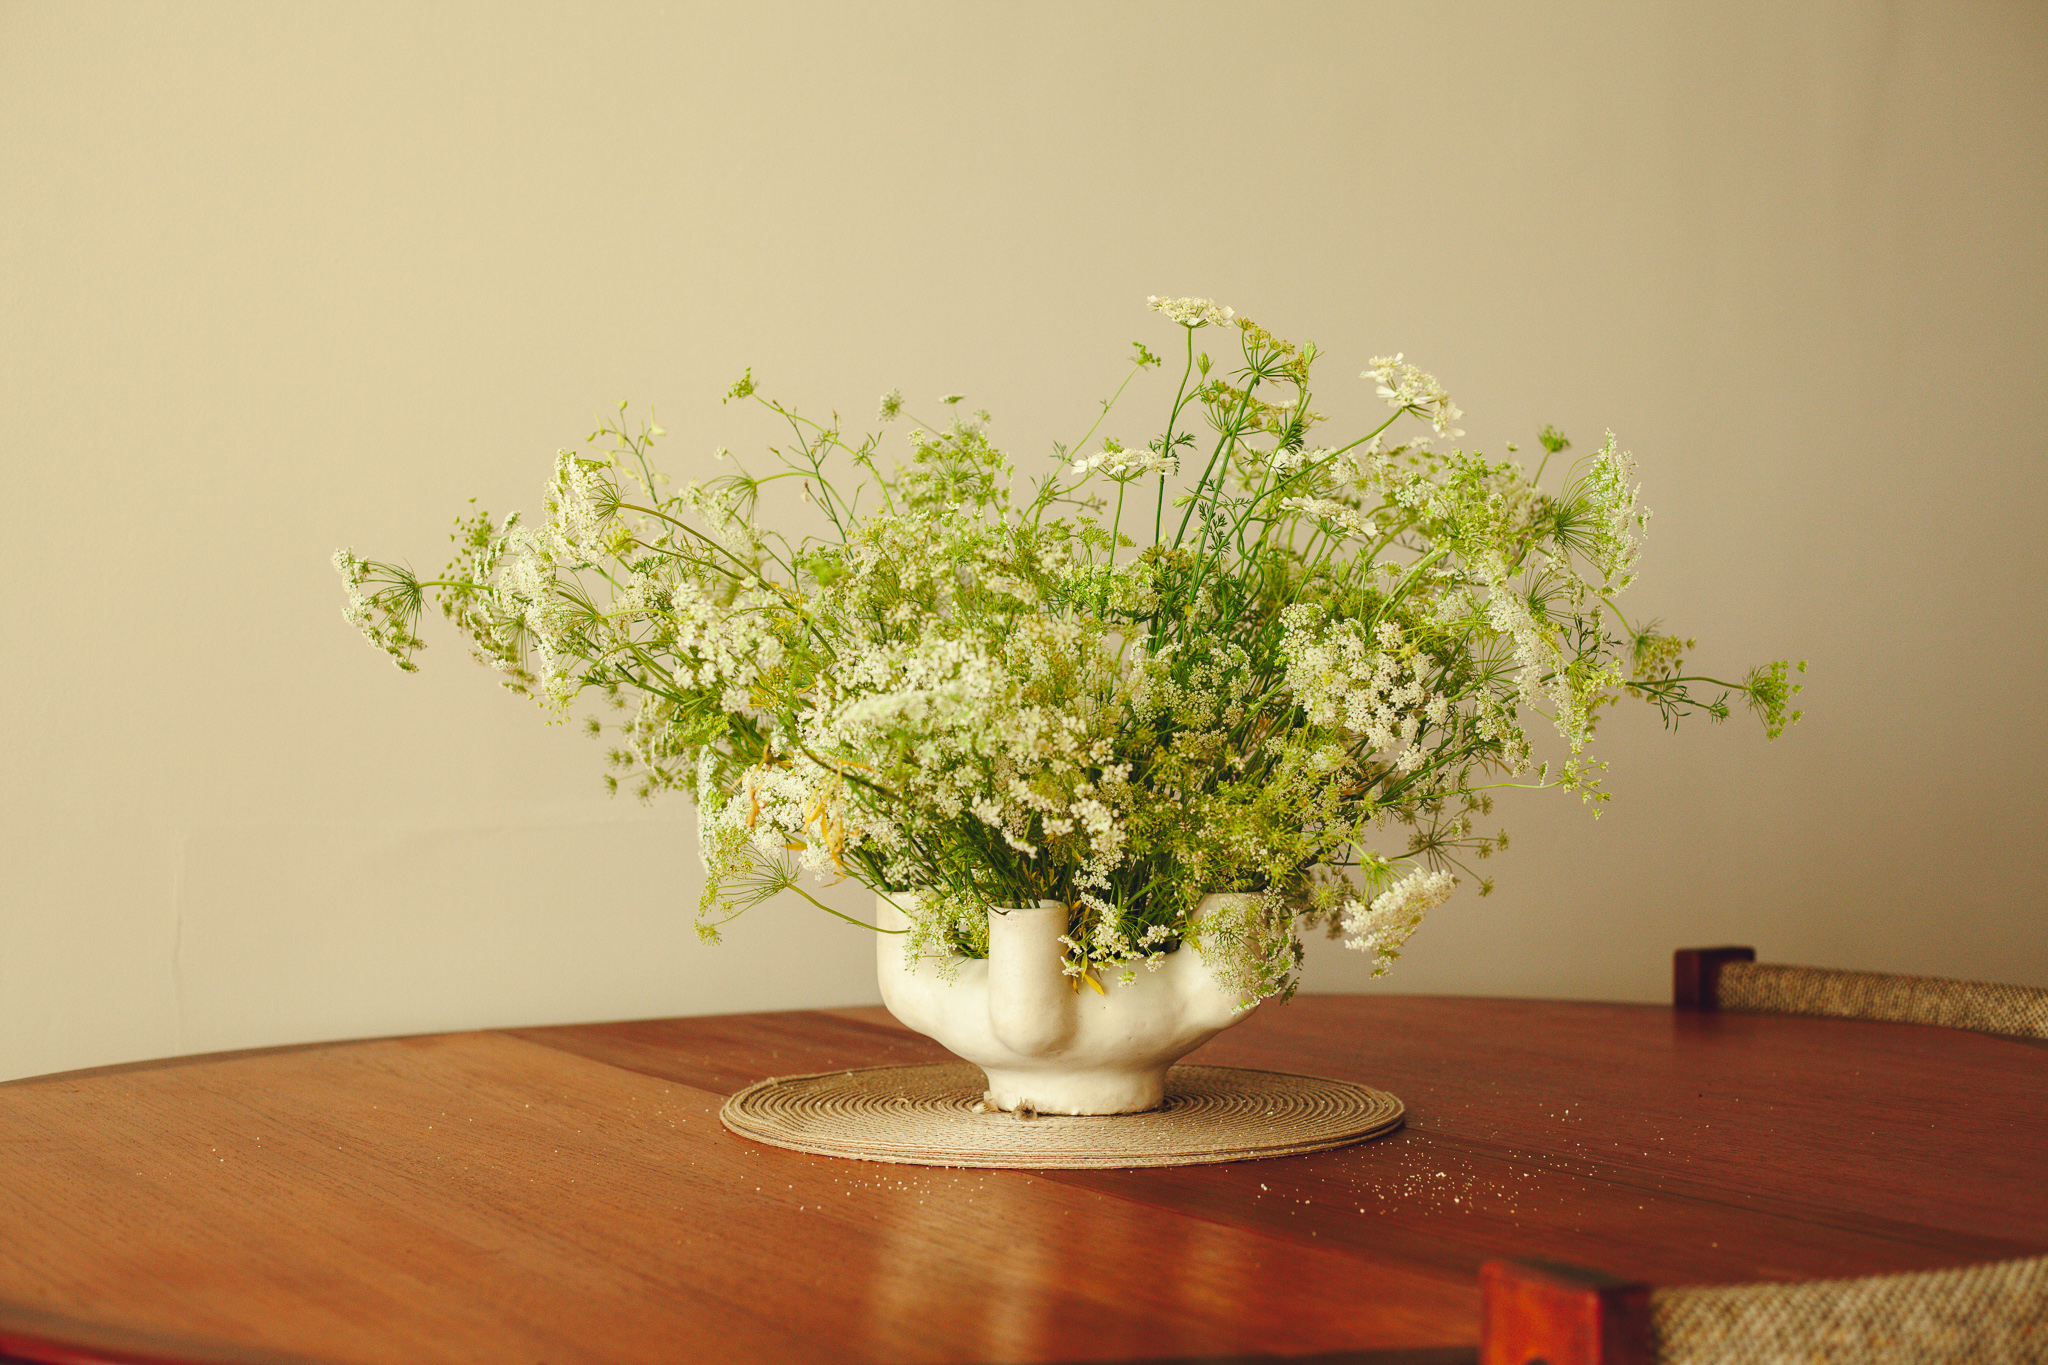 07.12.19 Home, Brooklyn, New York Wild Carrot and Orlaya in vessel from Simone Bodmer-Turner